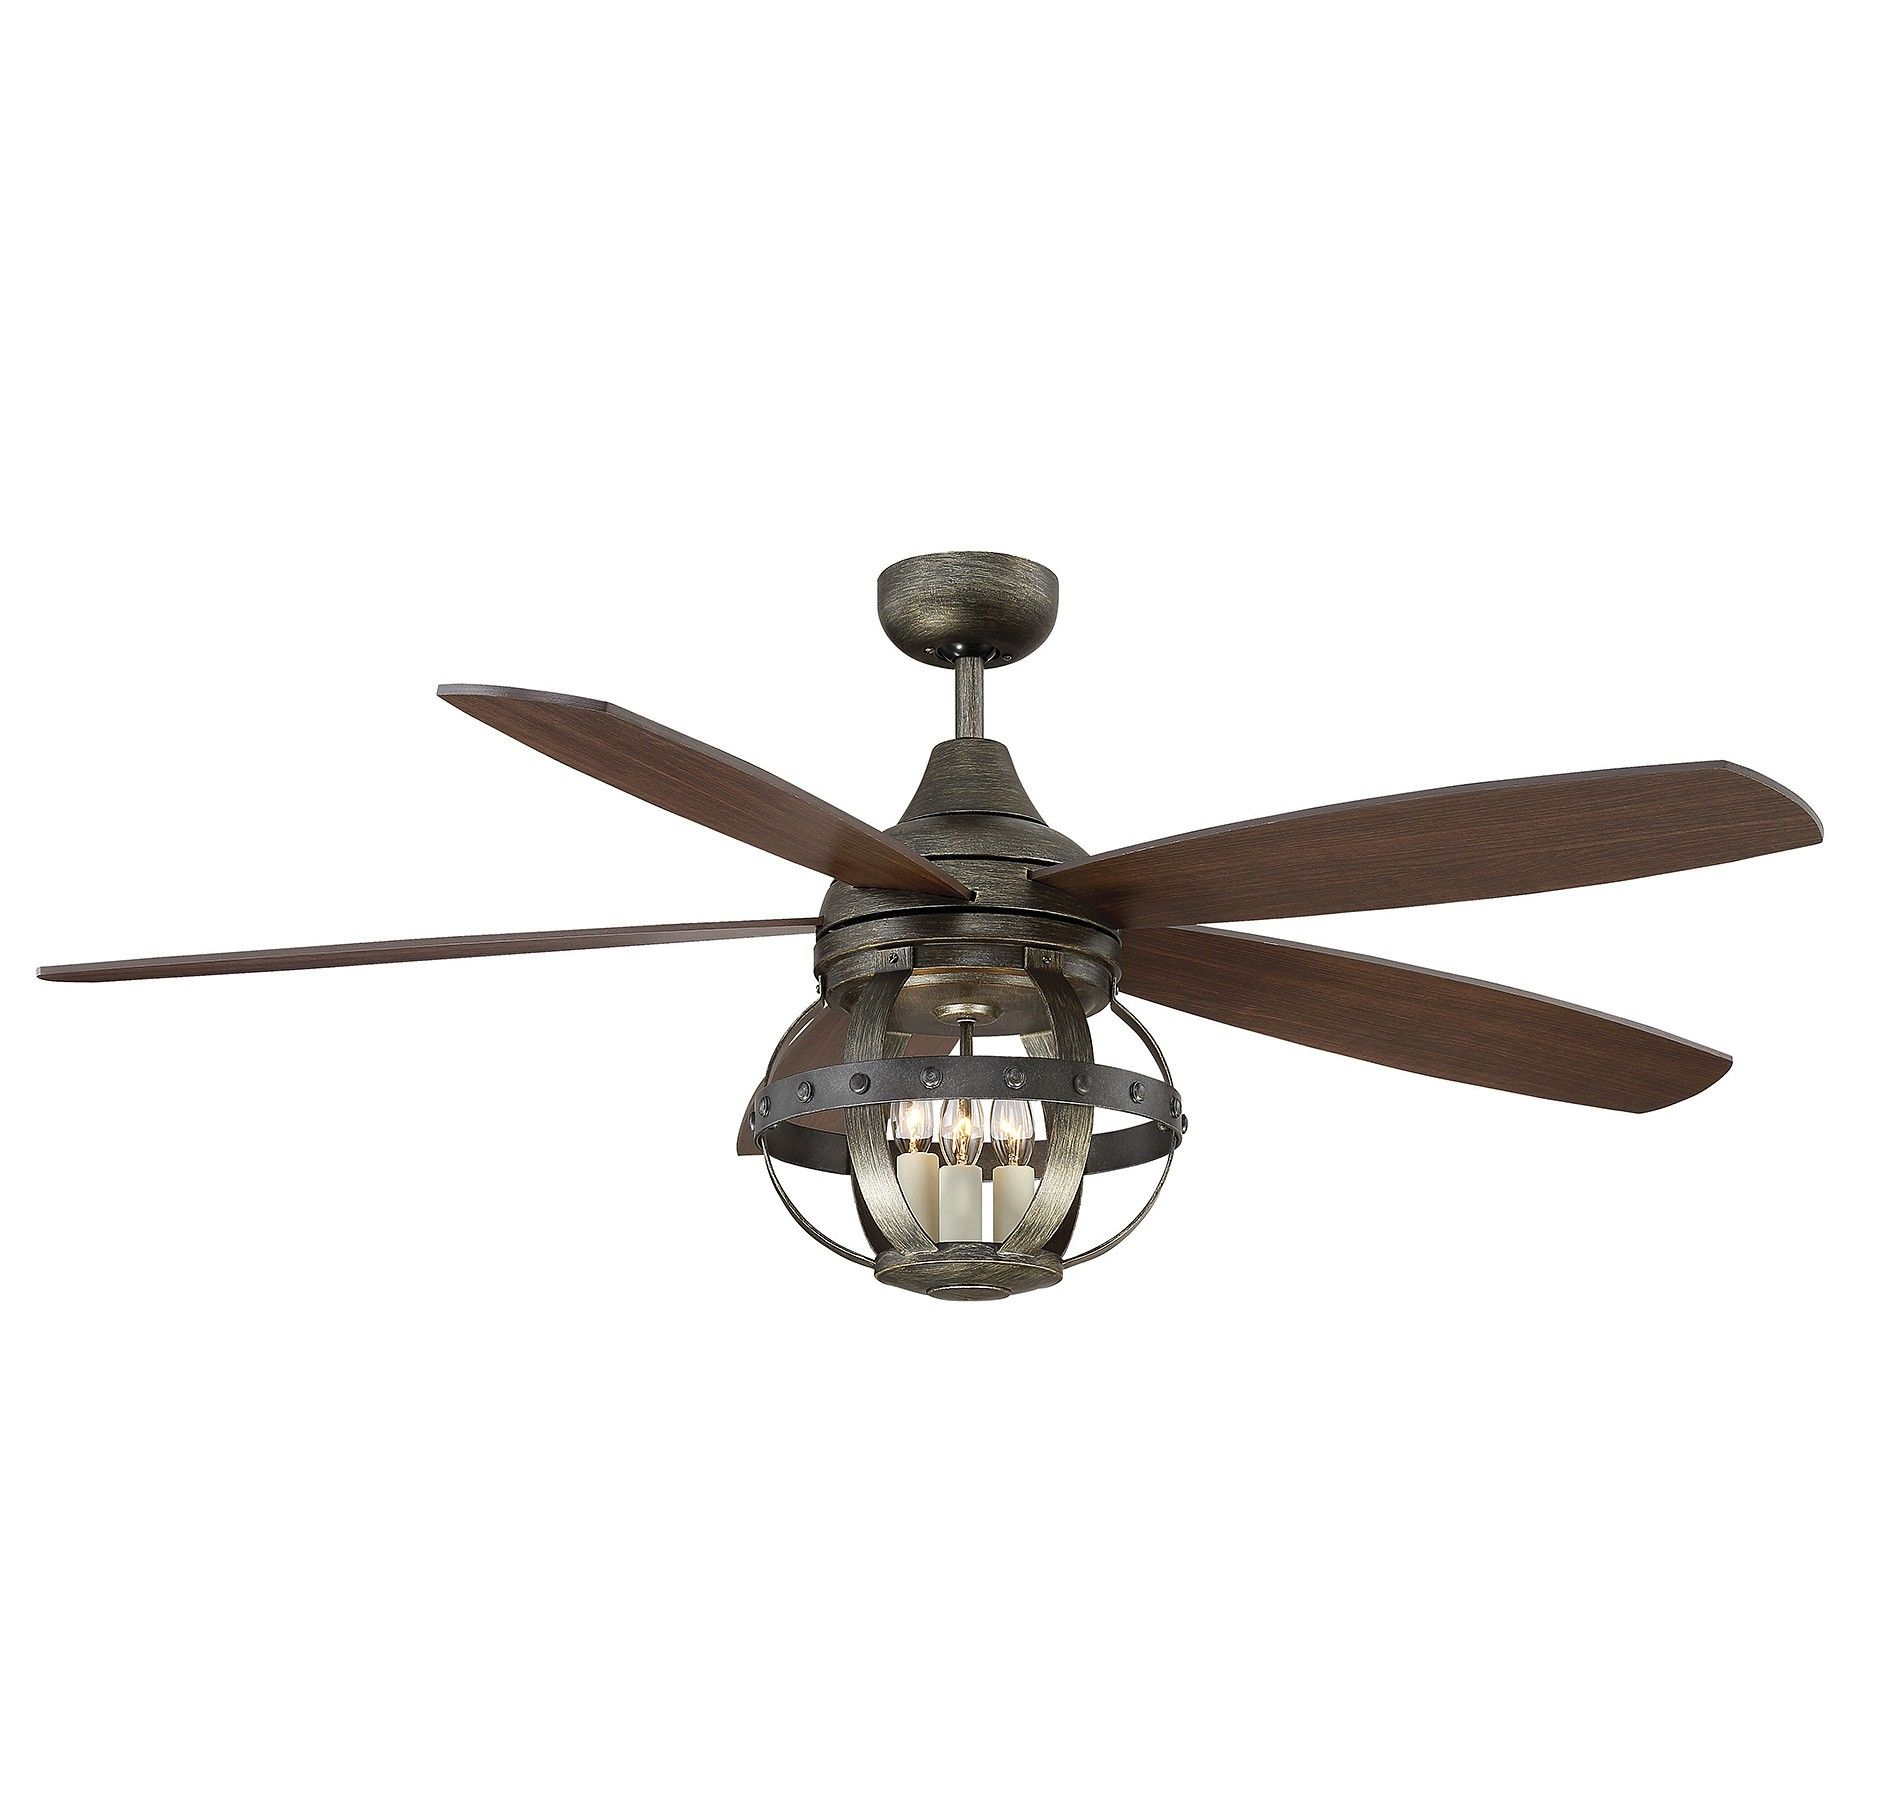 Home Ceiling Fan Makeover Ceiling Fan Best Outdoor Ceiling Fans